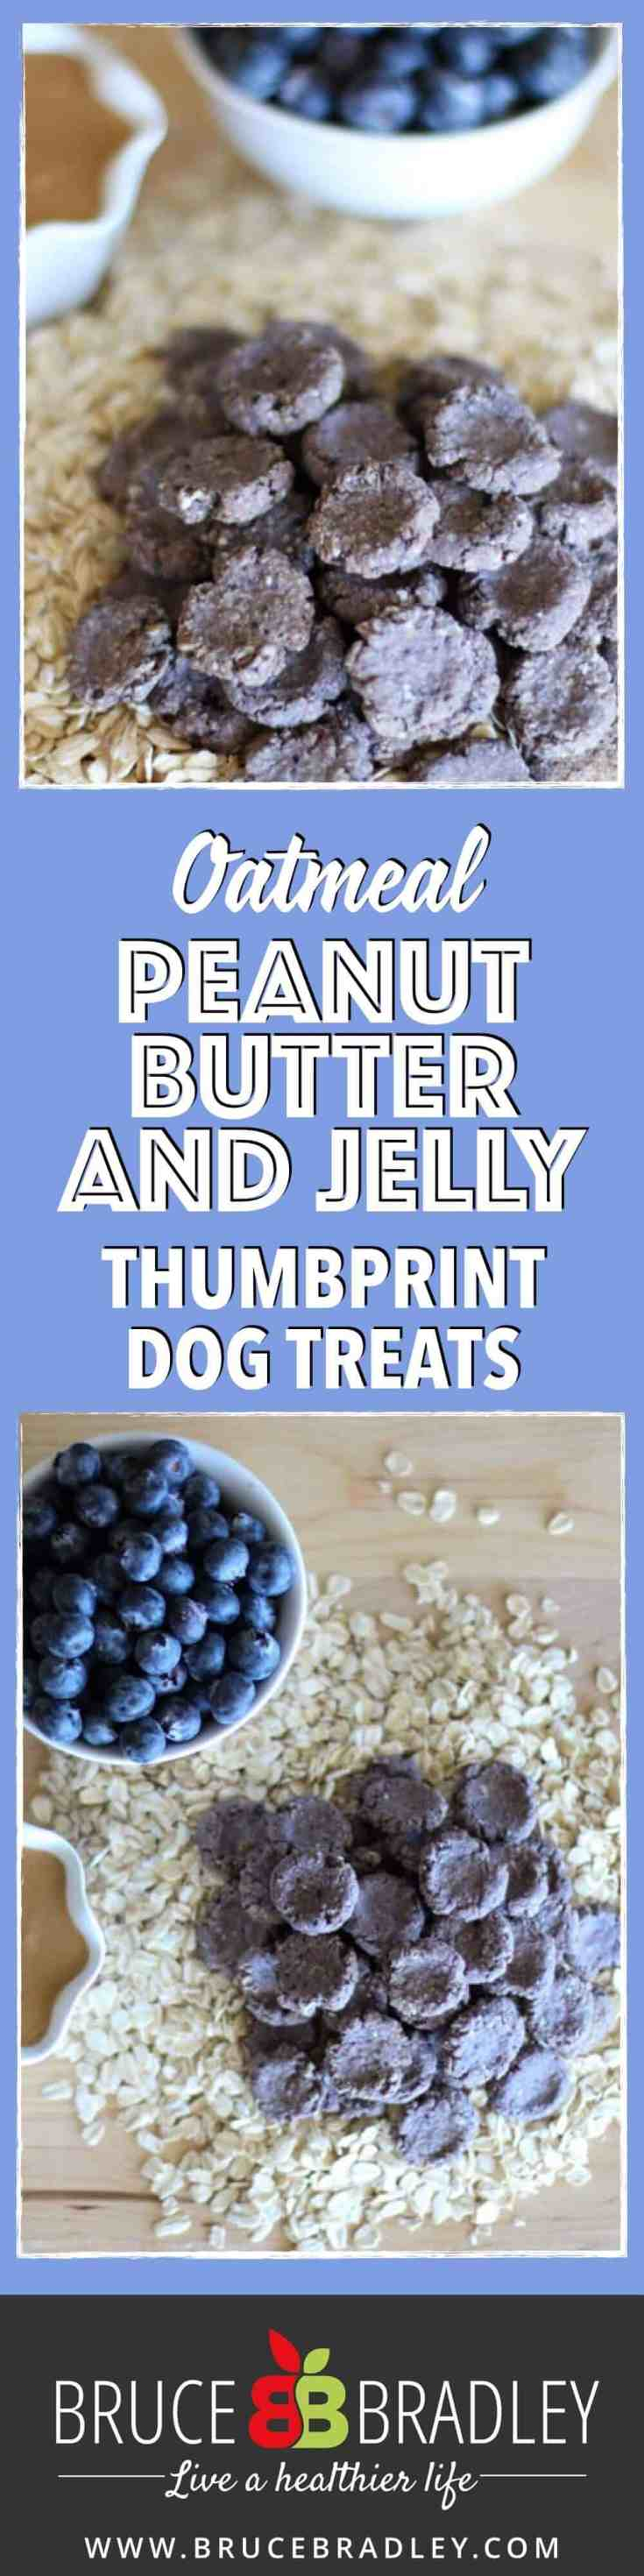 These Homemade Peanut Butter Dog Treats are made with 100% real ingredients like oatmeal, peanut butter, blueberries, and applesauce. No additives or artificial ingredients for your puppy!